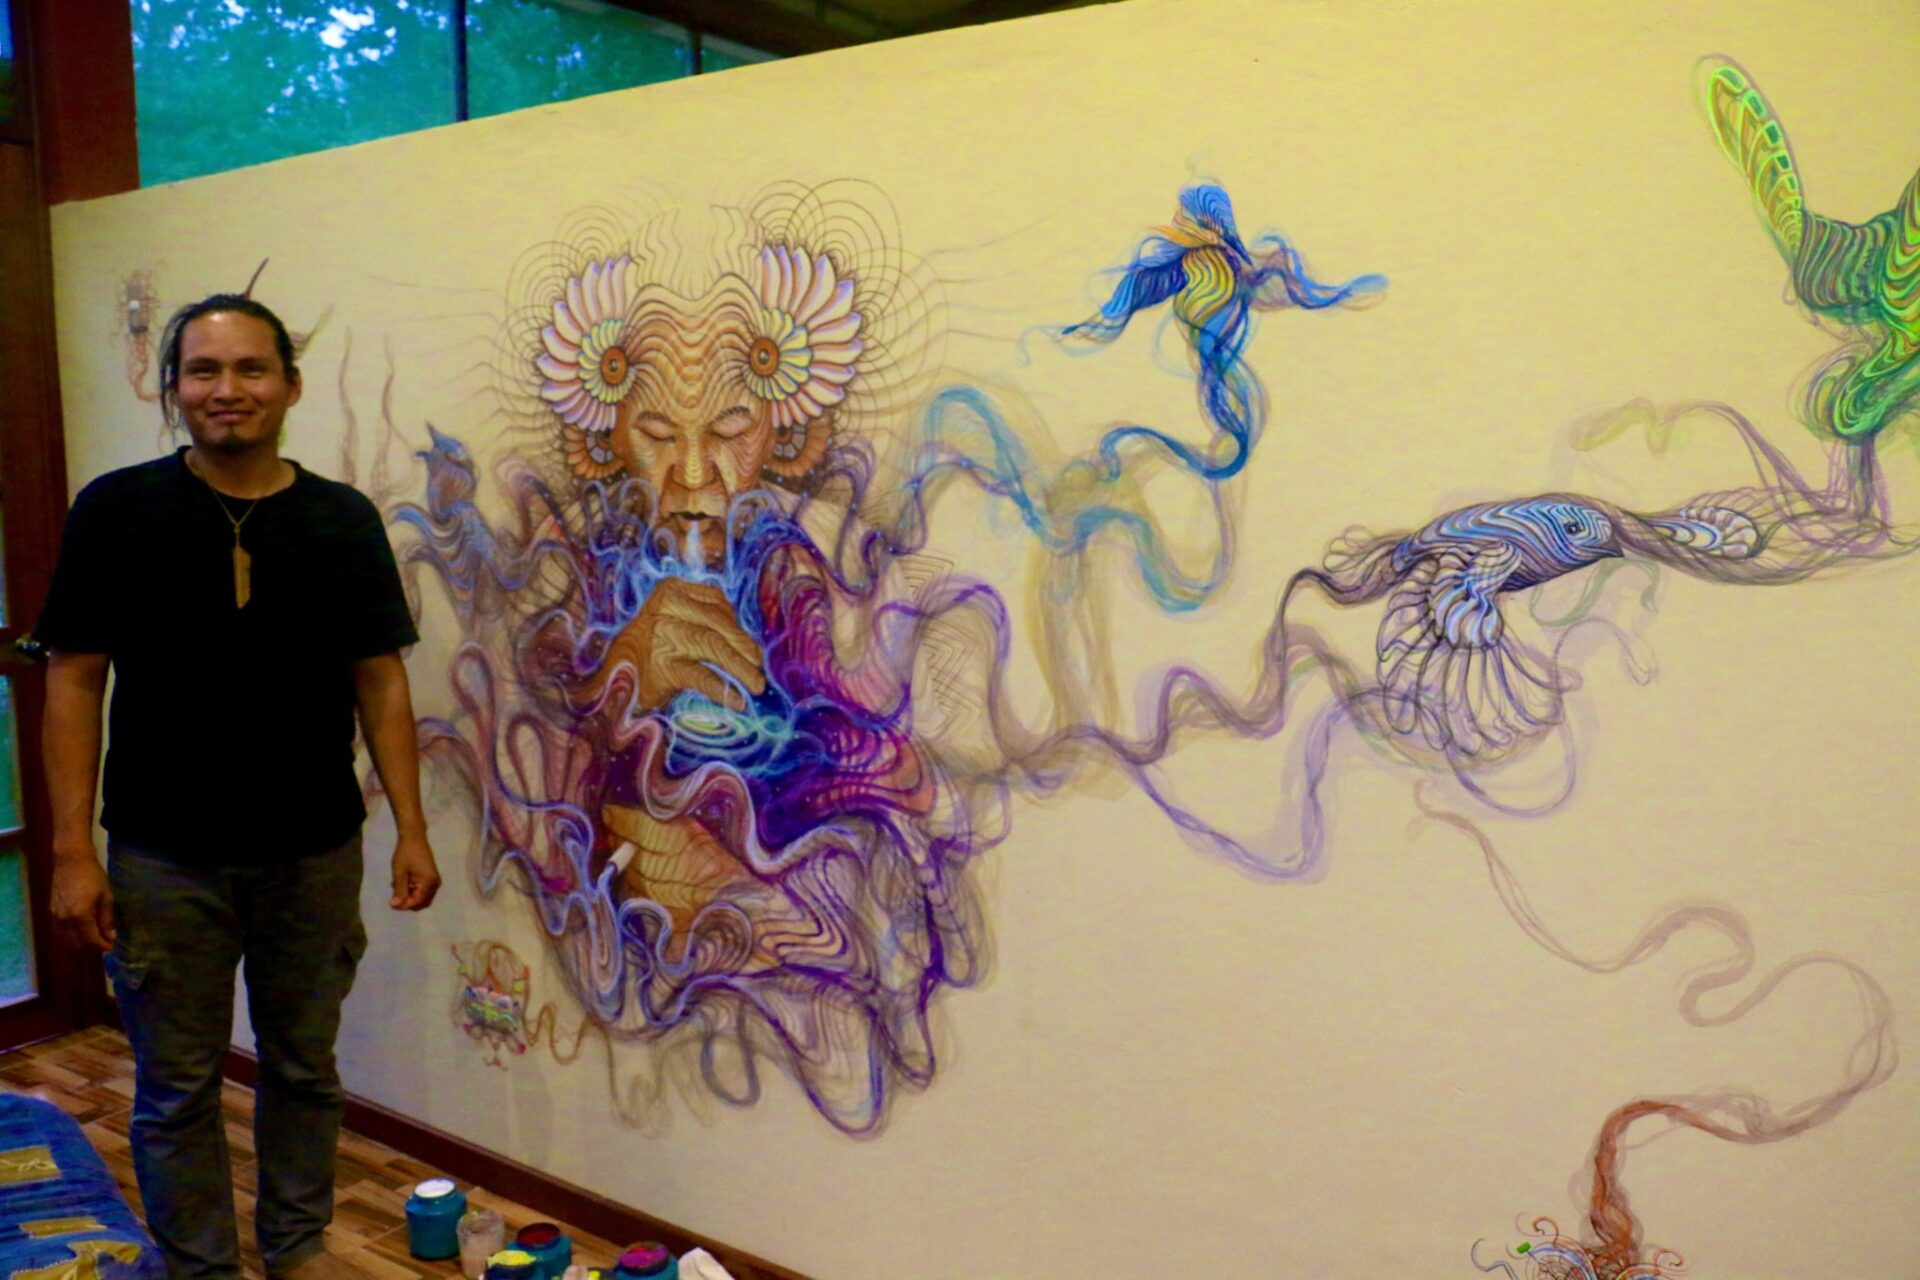 Luis Tamani with his finished mural